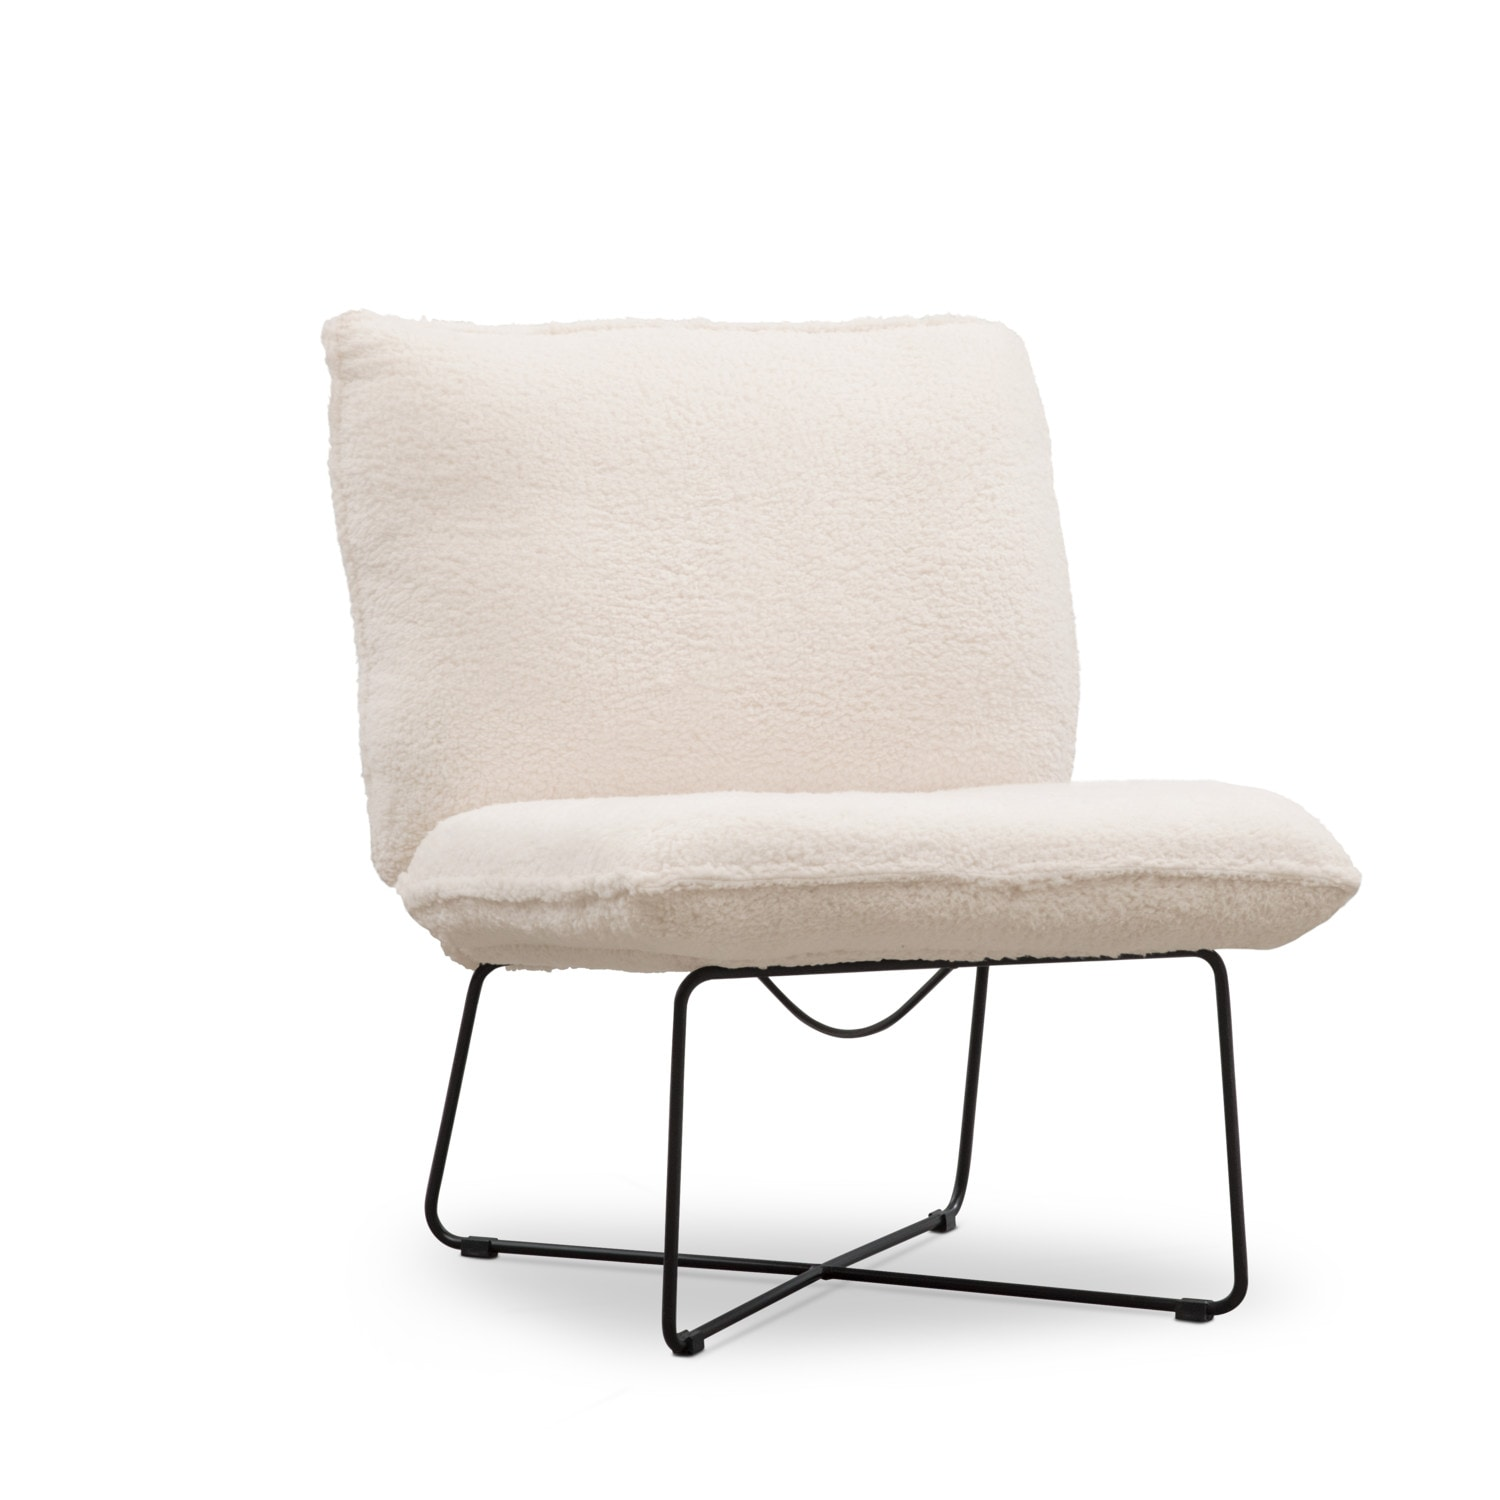 Living Room Furniture - Denali Chair - White